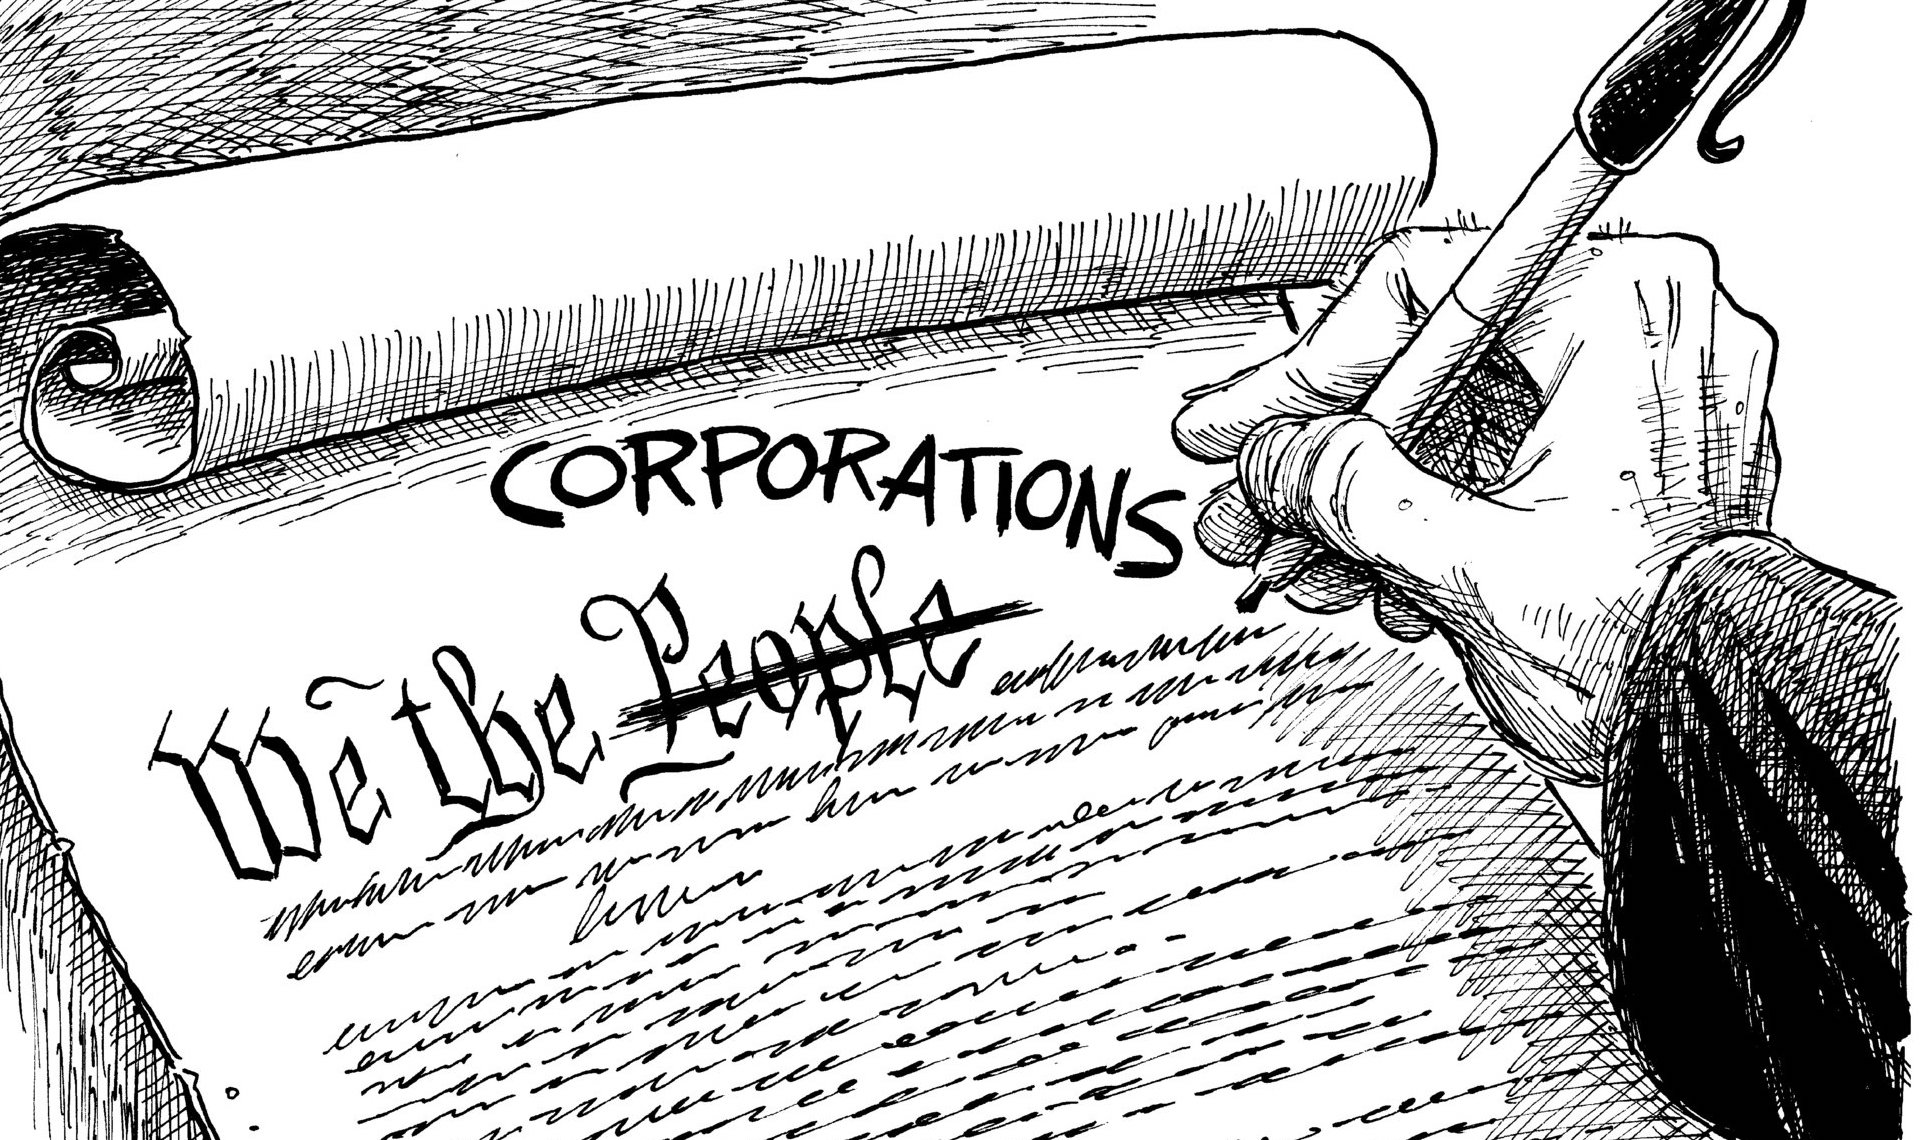 OPINION: Corporate Citizenship Starts with not Undermining Our Democracy | Independent Voter News